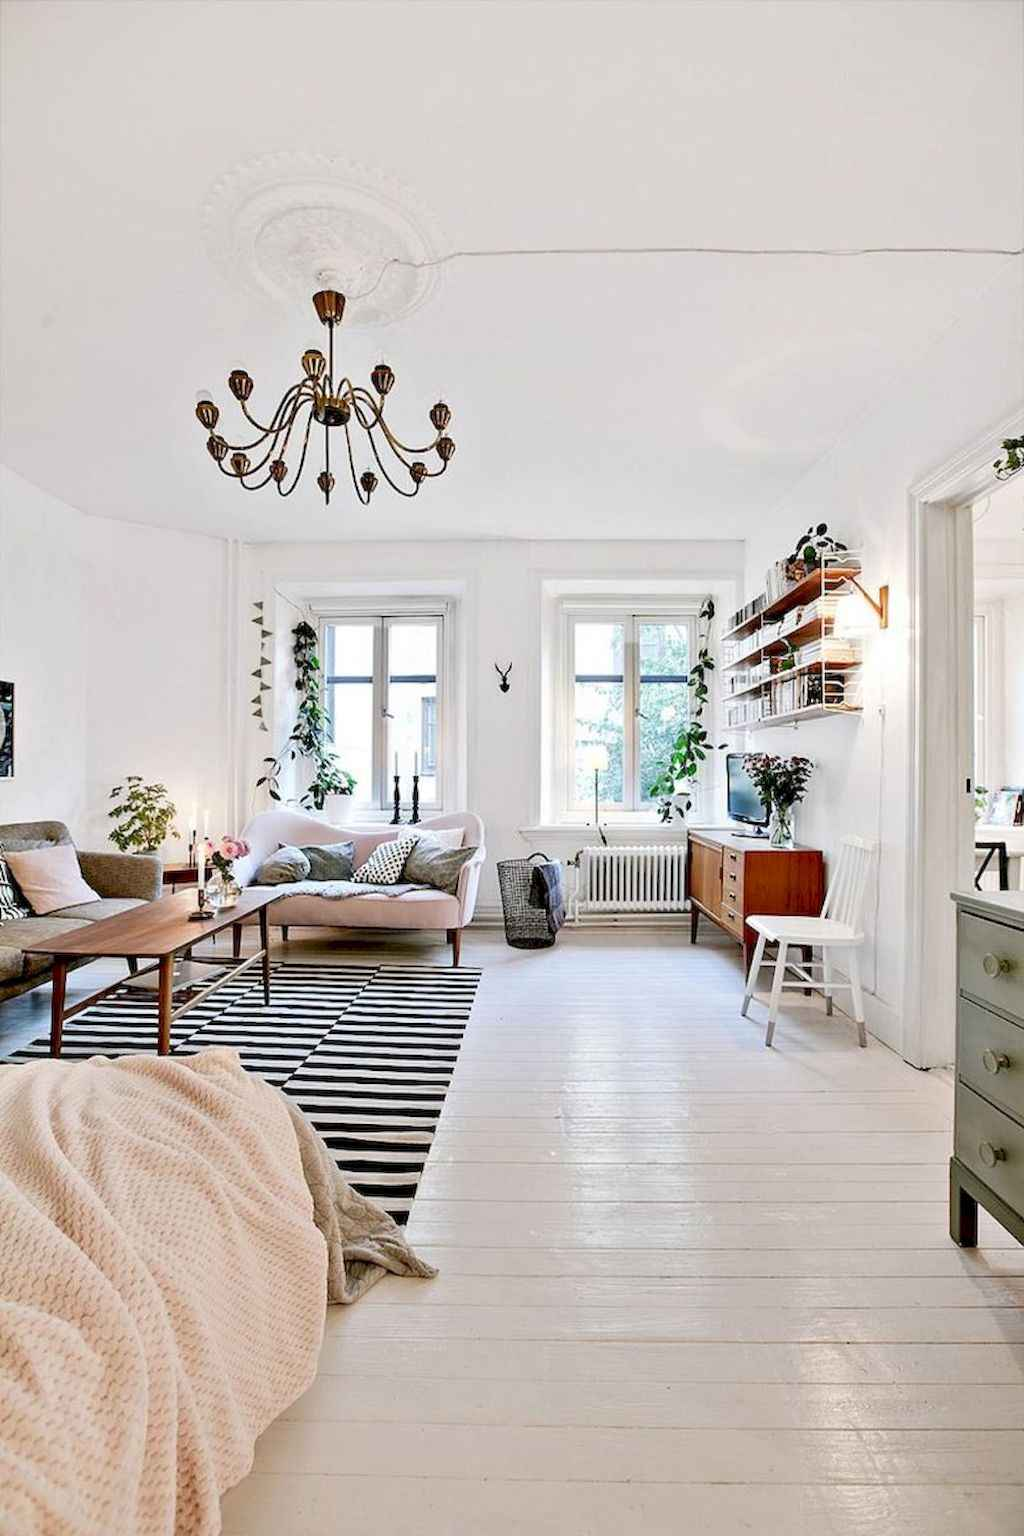 Amazing small first apartment decorating ideas (43)